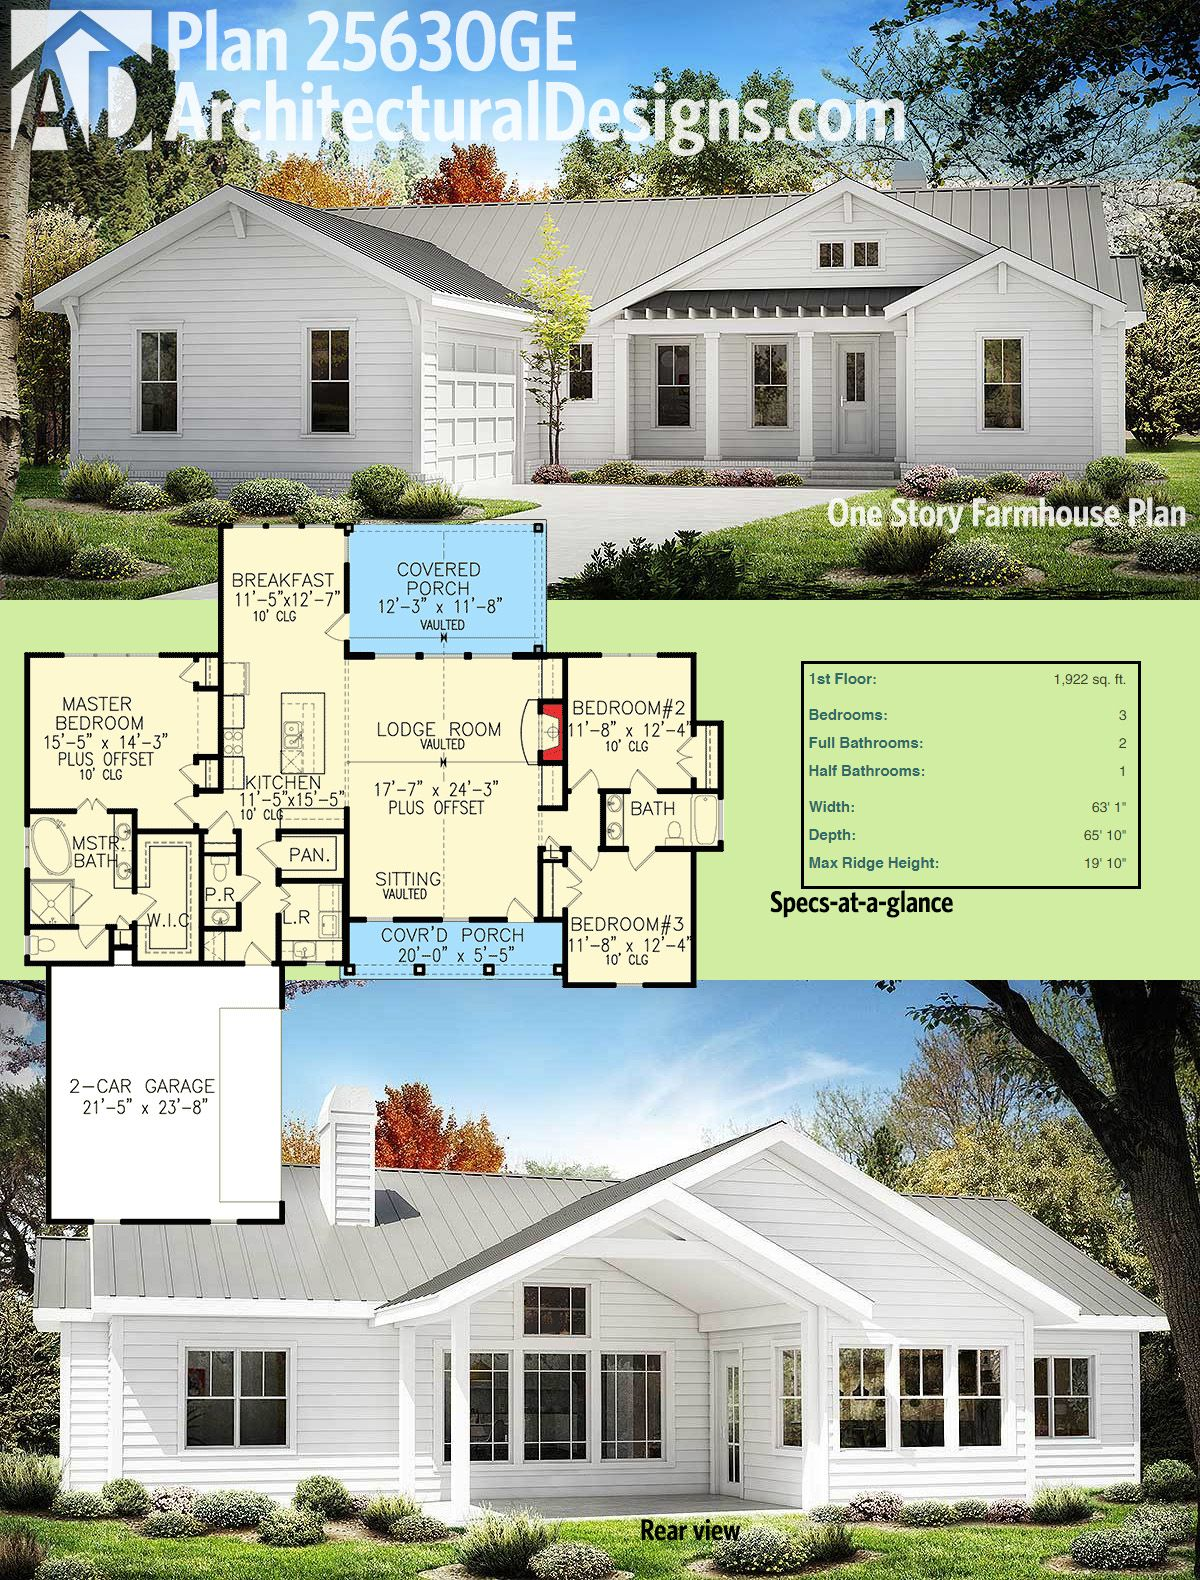 Plan 25630ge one story farmhouse plan farmhouse plans for Small modern farmhouse